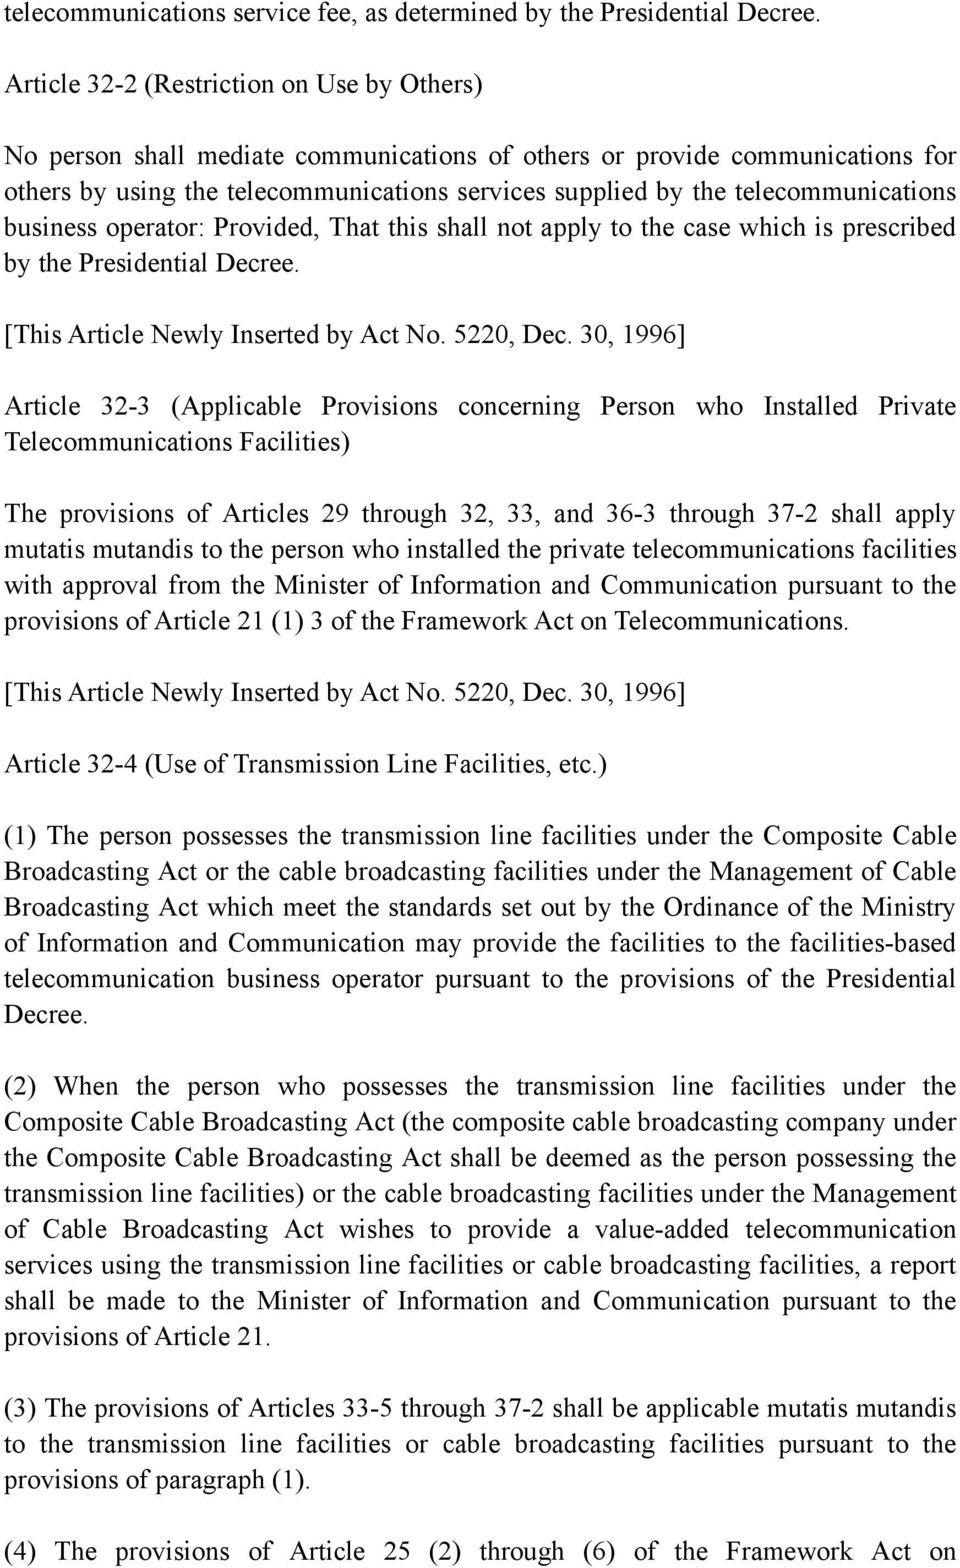 telecommunications business operator: Provided, That this shall not apply to the case which is prescribed by the Presidential Decree. [This Article Newly Inserted by Act No. 5220, Dec.